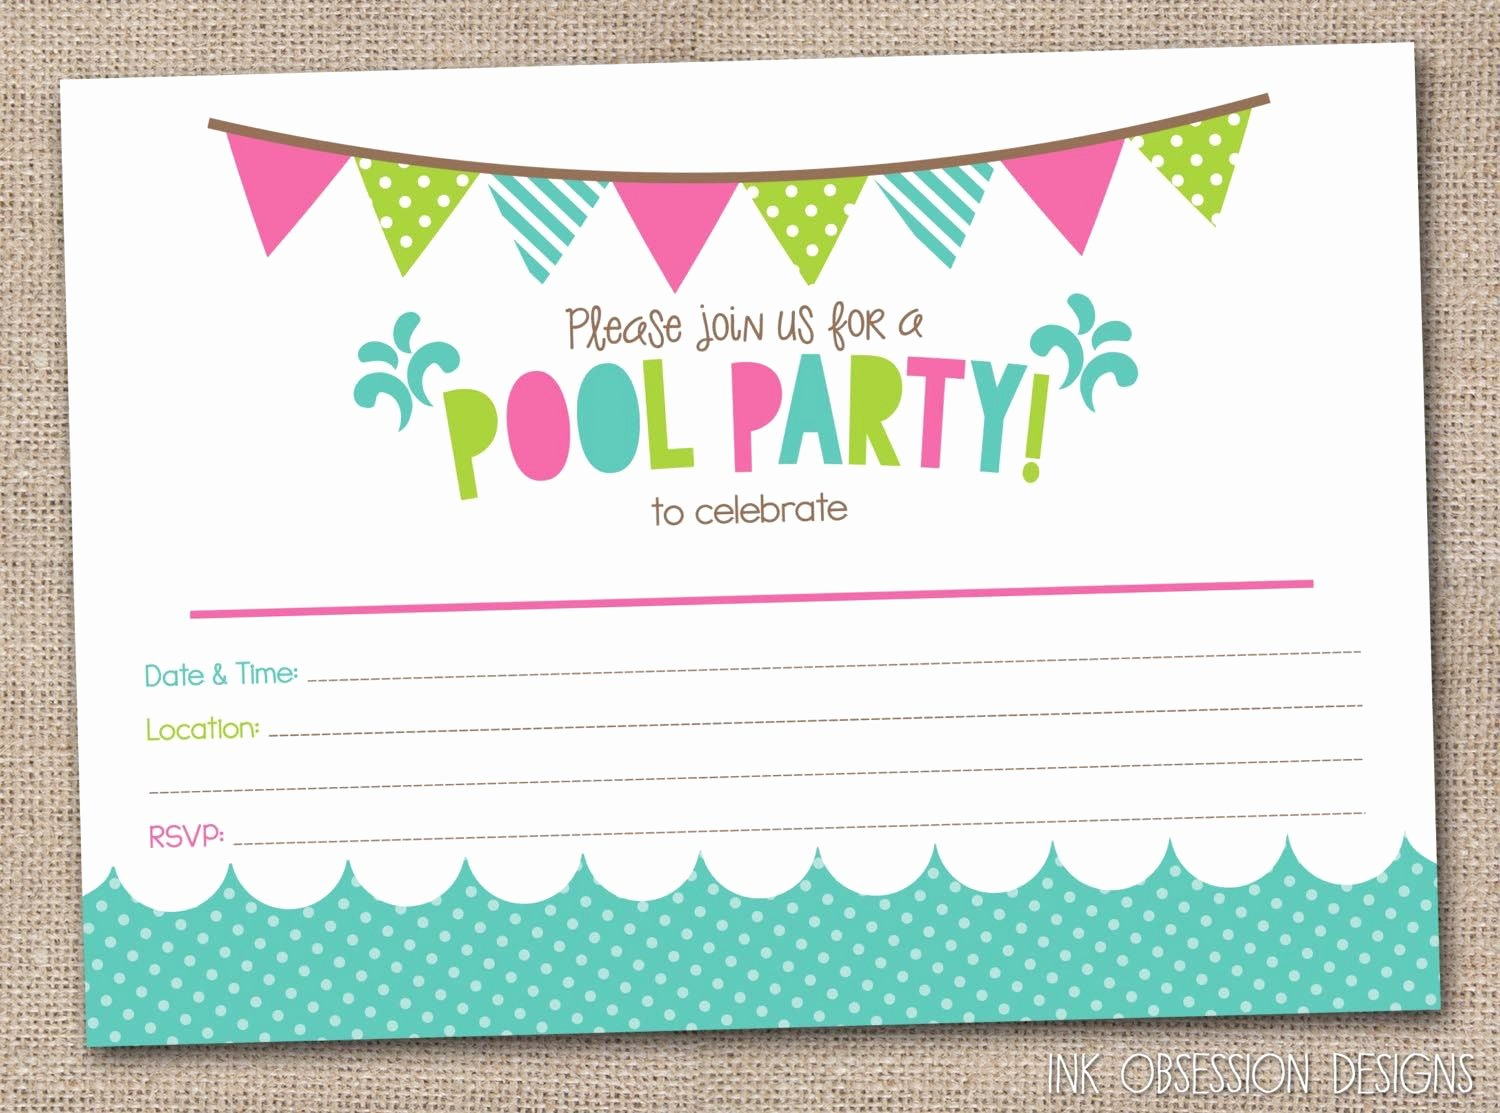 Reception Invitation Template Free Fresh Free Printable Pool Party Birthday Invitations